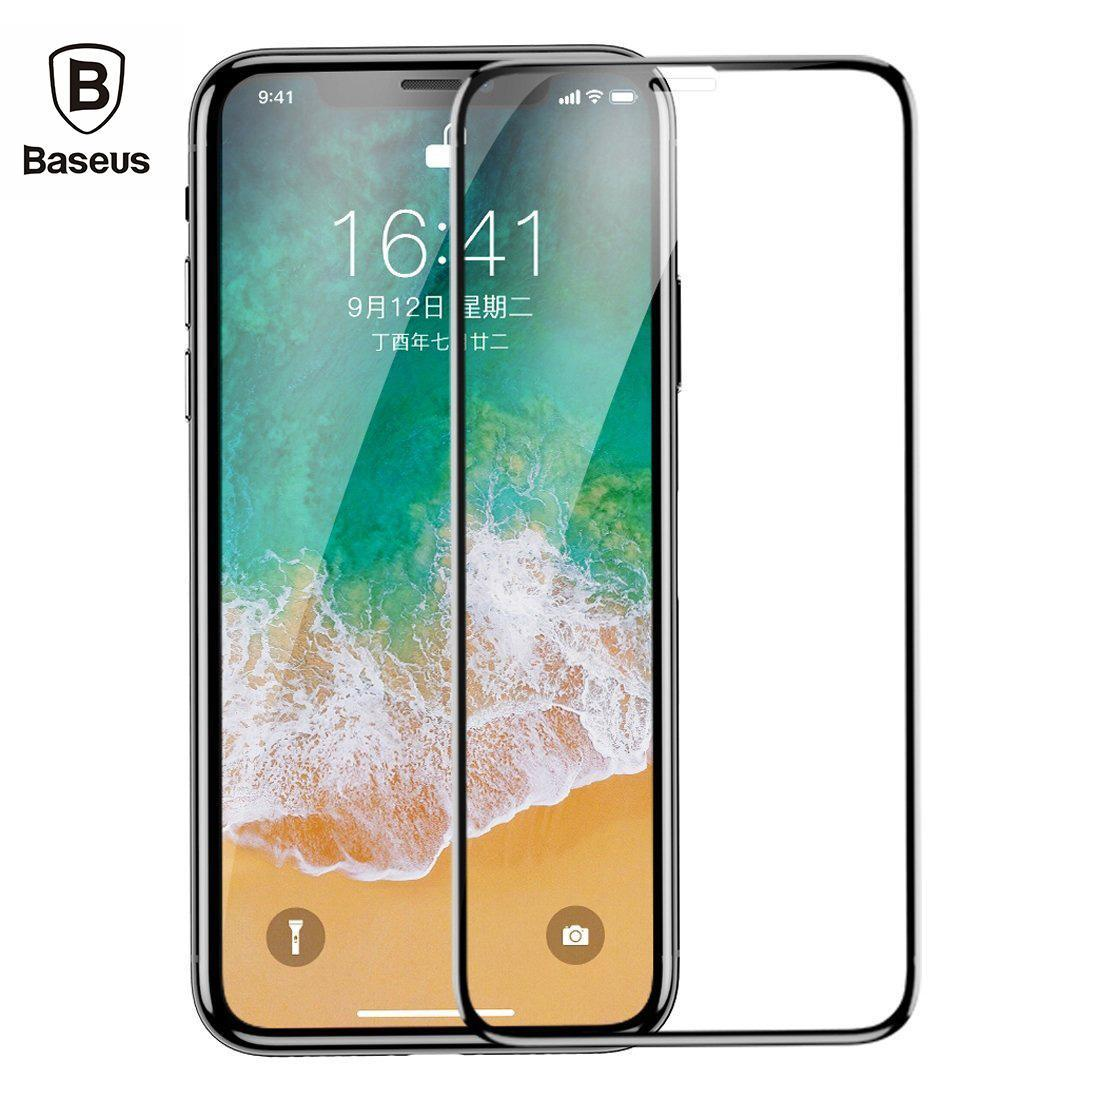 Buy Top Screen Protectors Mobiles Healing Shield Curved Fit Protector For Iphone 7 Plus Matte Baseus Xs Max X Xr 4d Arc Tempered Glass